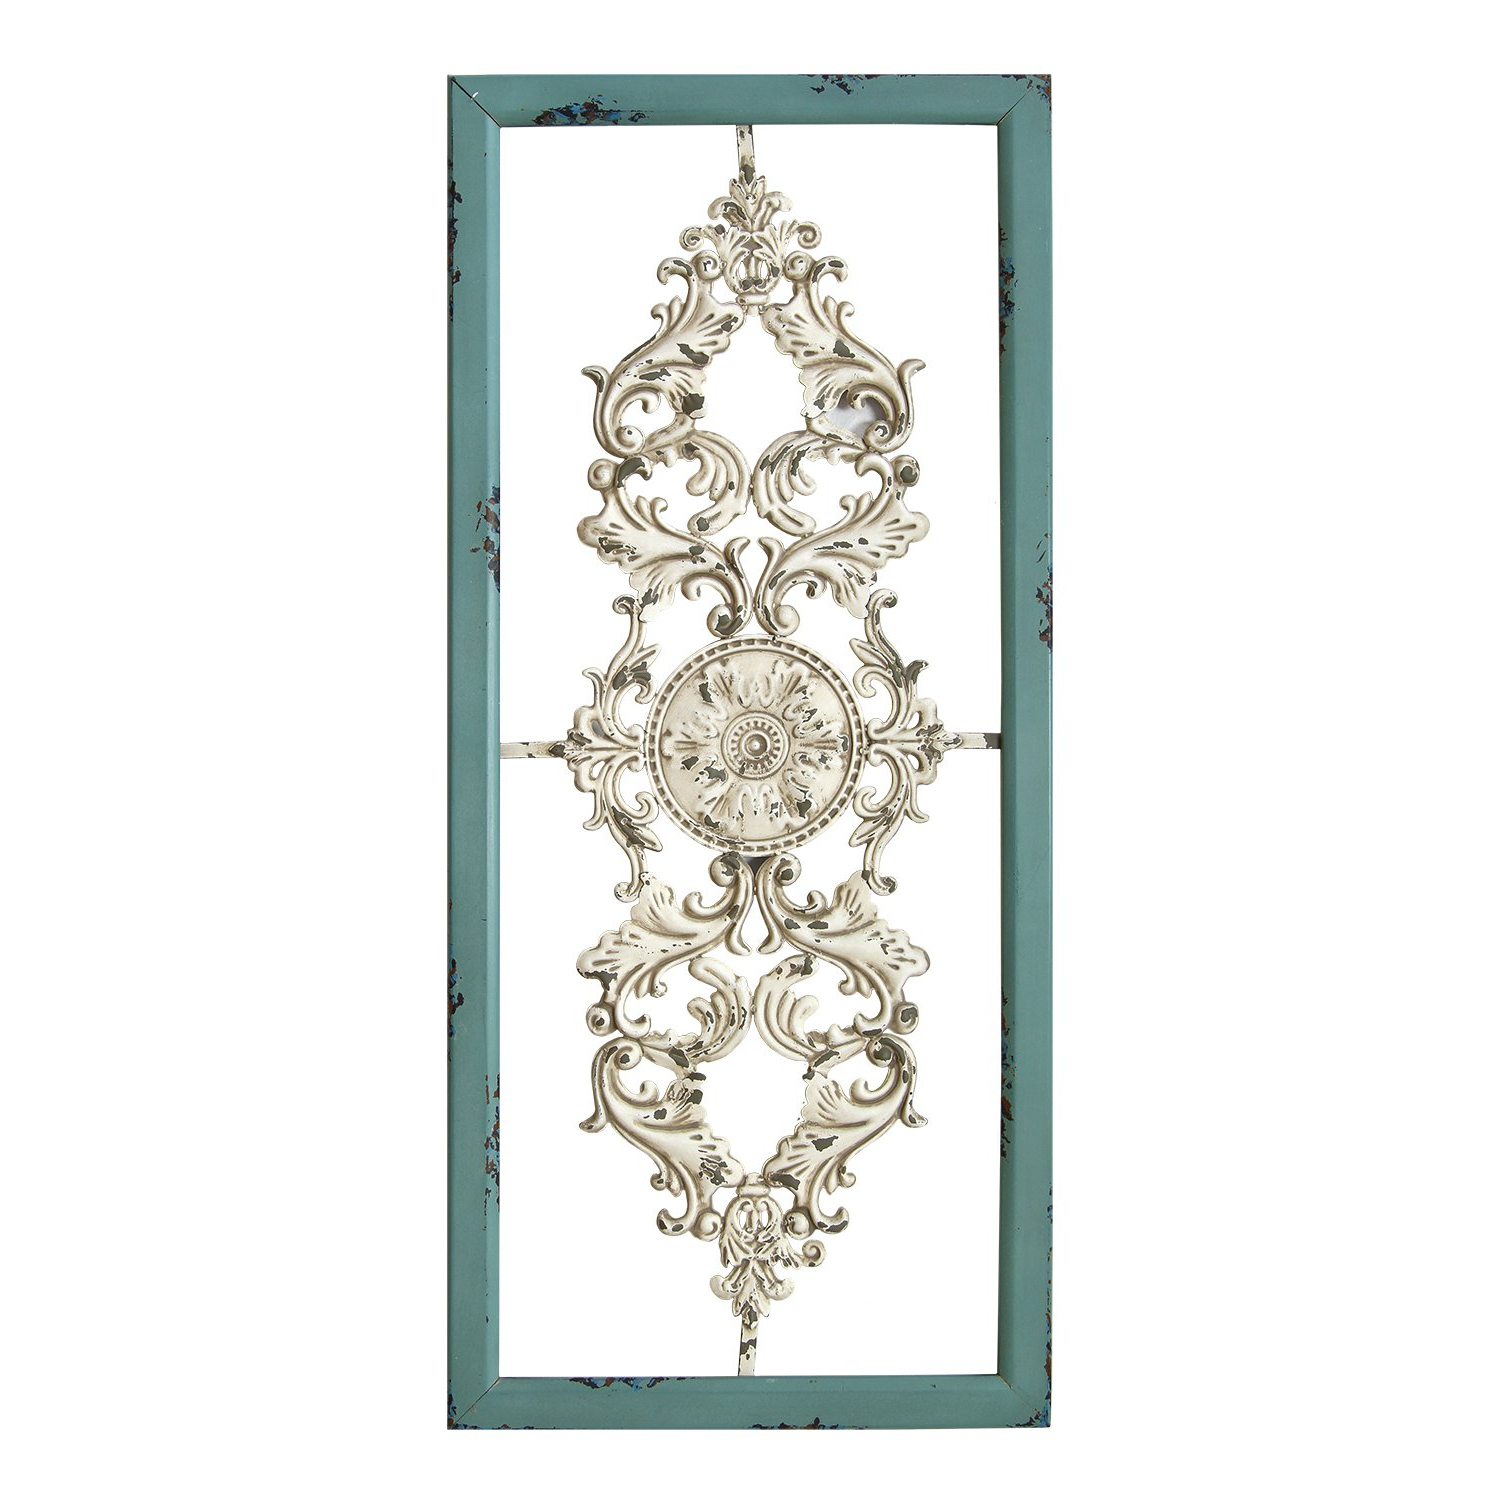 Scroll Framed Wall Decor Intended For Famous Stratton Home Decor Shd0121 Scroll Panel Wall Decor, 10.00 Wx 1.50 Dx  (View 17 of 20)